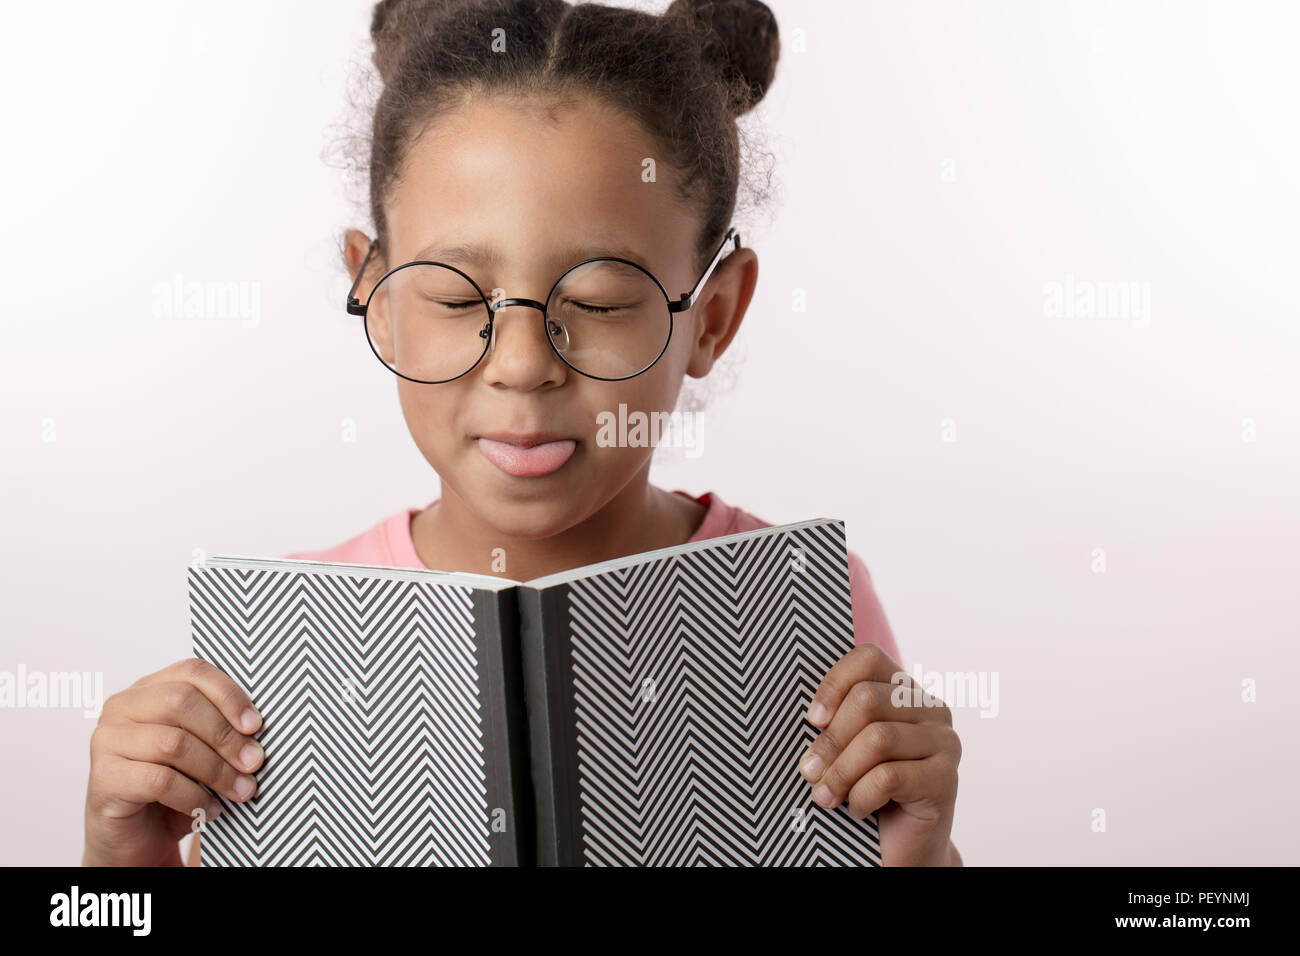 naughty girl doesn't like to read books. nice girl in glasses with closed eyes is holding a notepad. copy space. dark-haired child teasing somebody - Stock Image